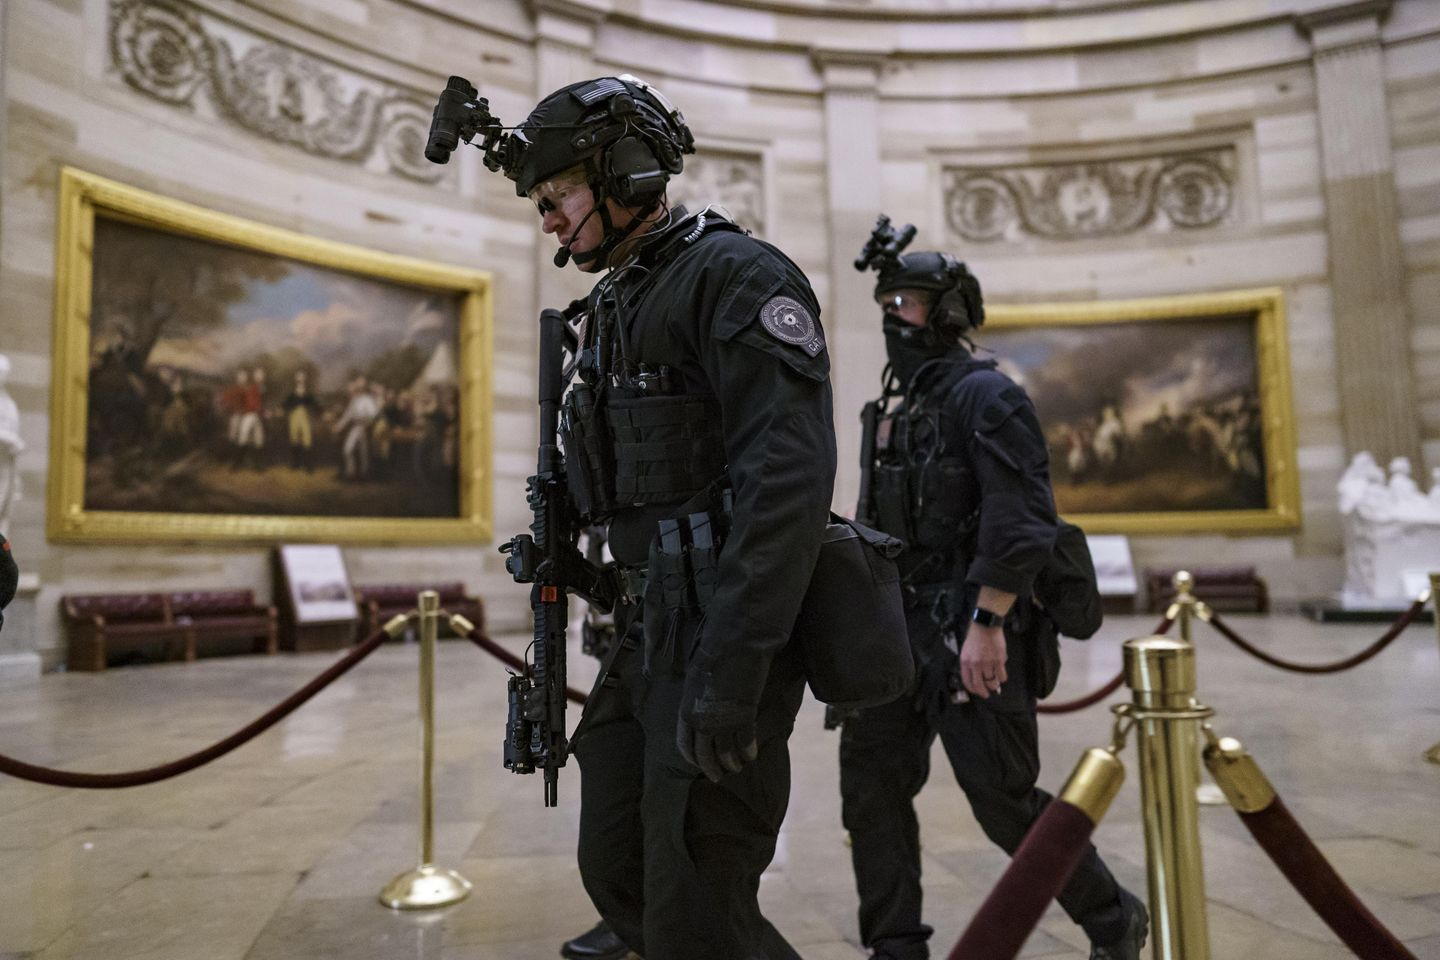 Secret Service official: 'No-fail mission' underway to ensure safe inauguration